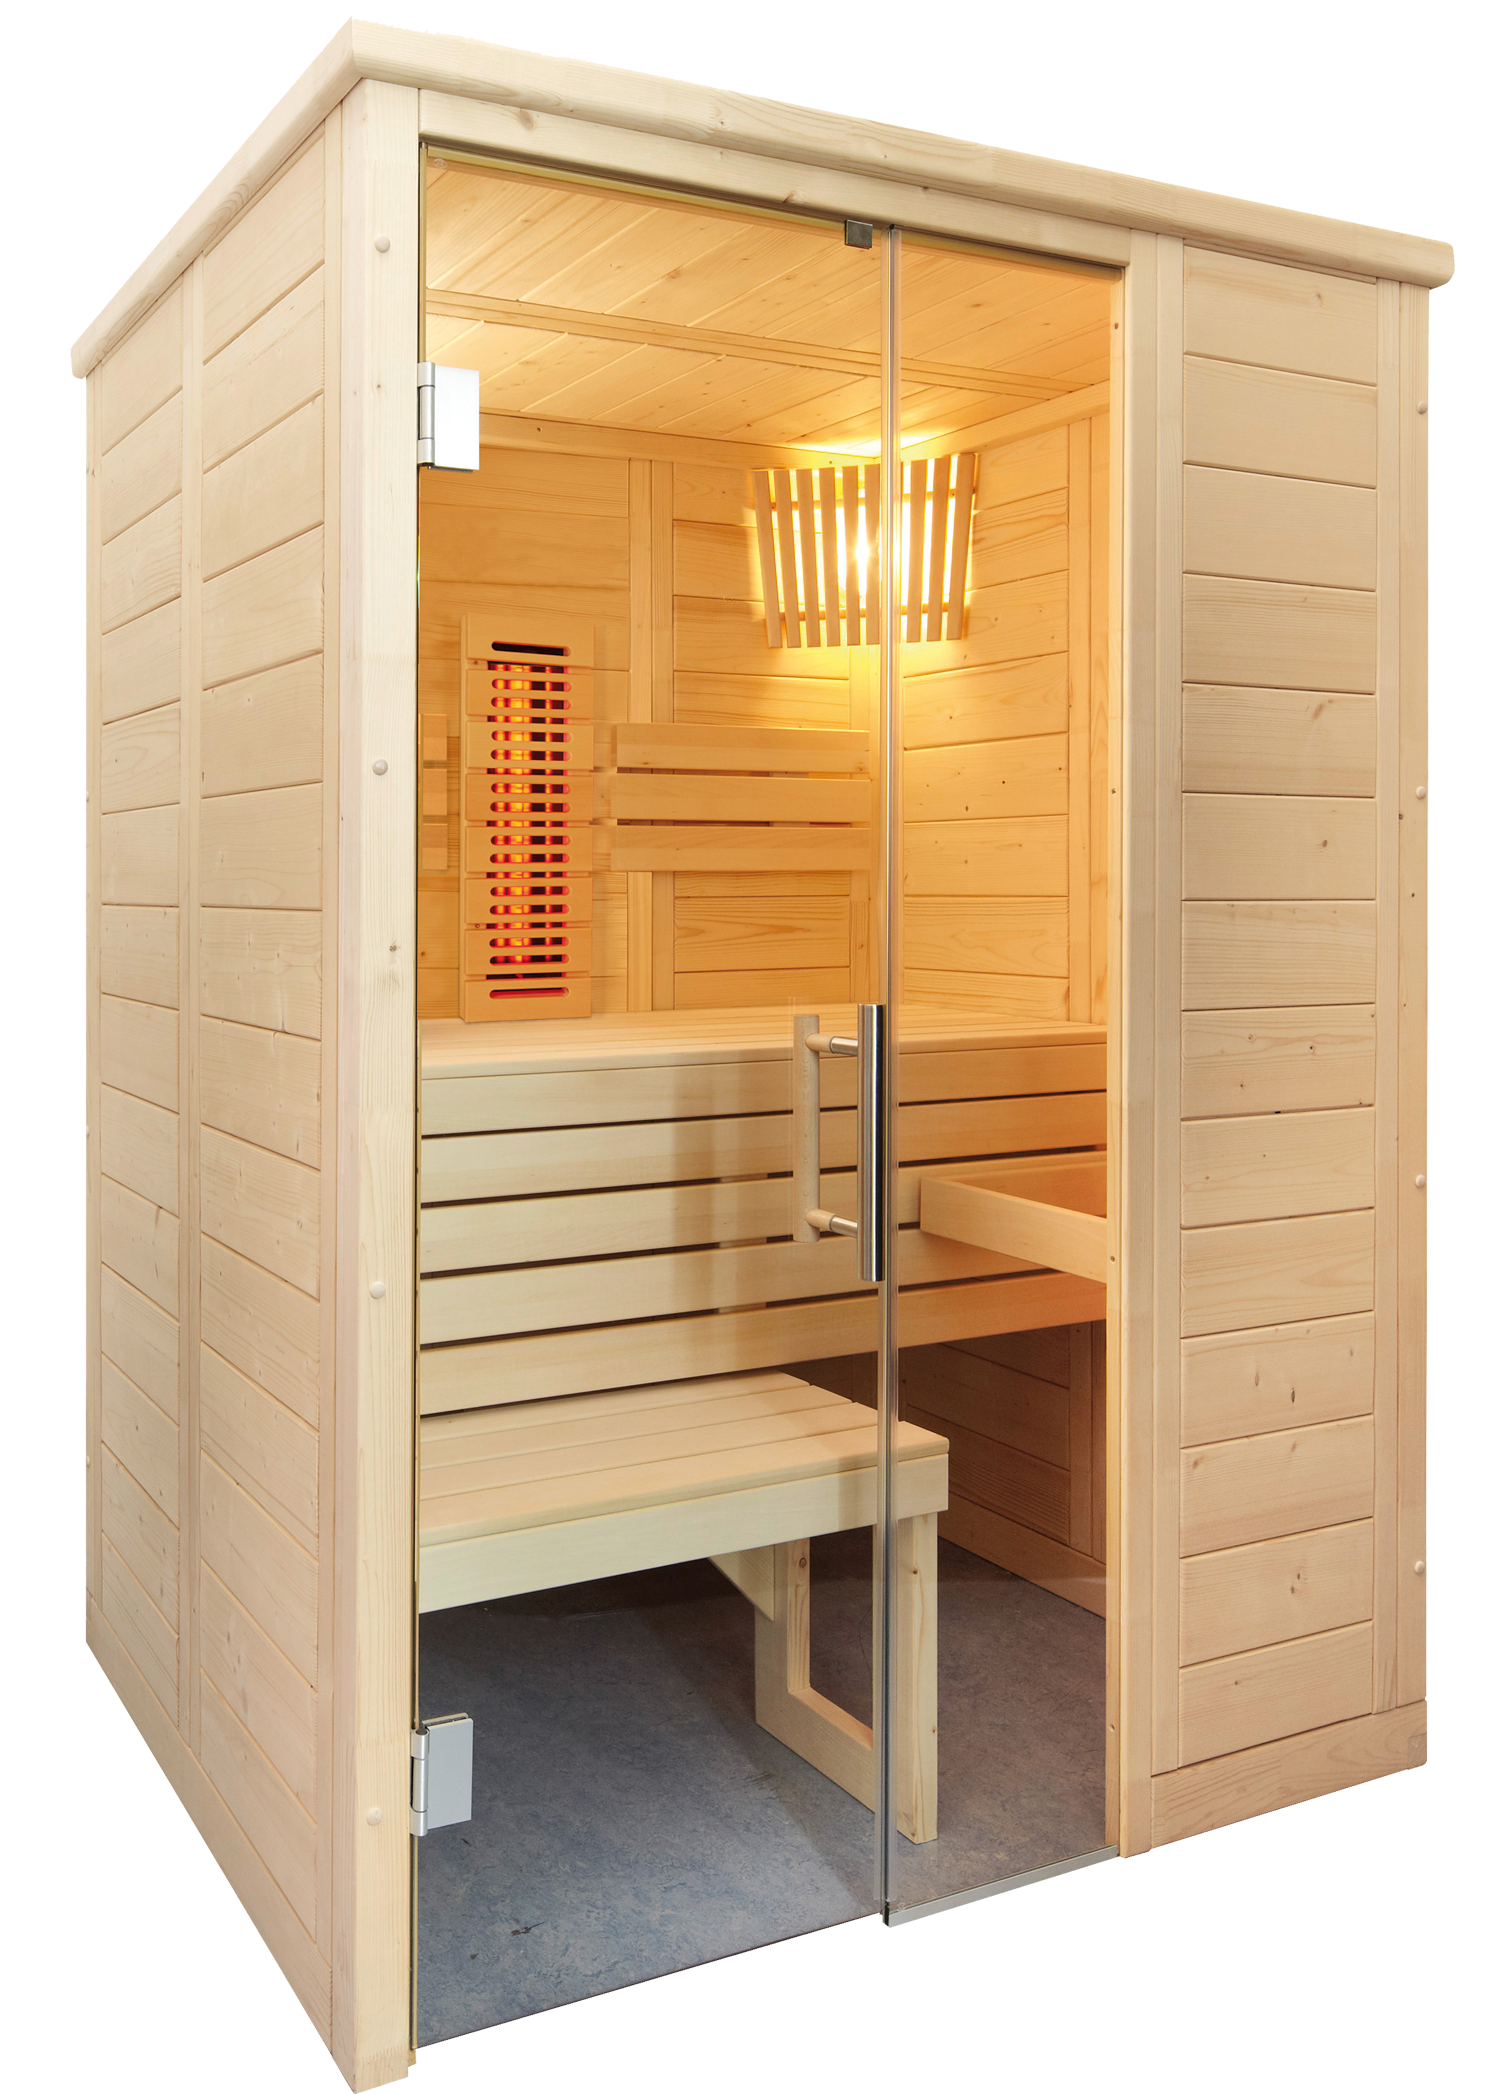 sentiotec produkte sentiotec sauna sauna kabinen alaska. Black Bedroom Furniture Sets. Home Design Ideas